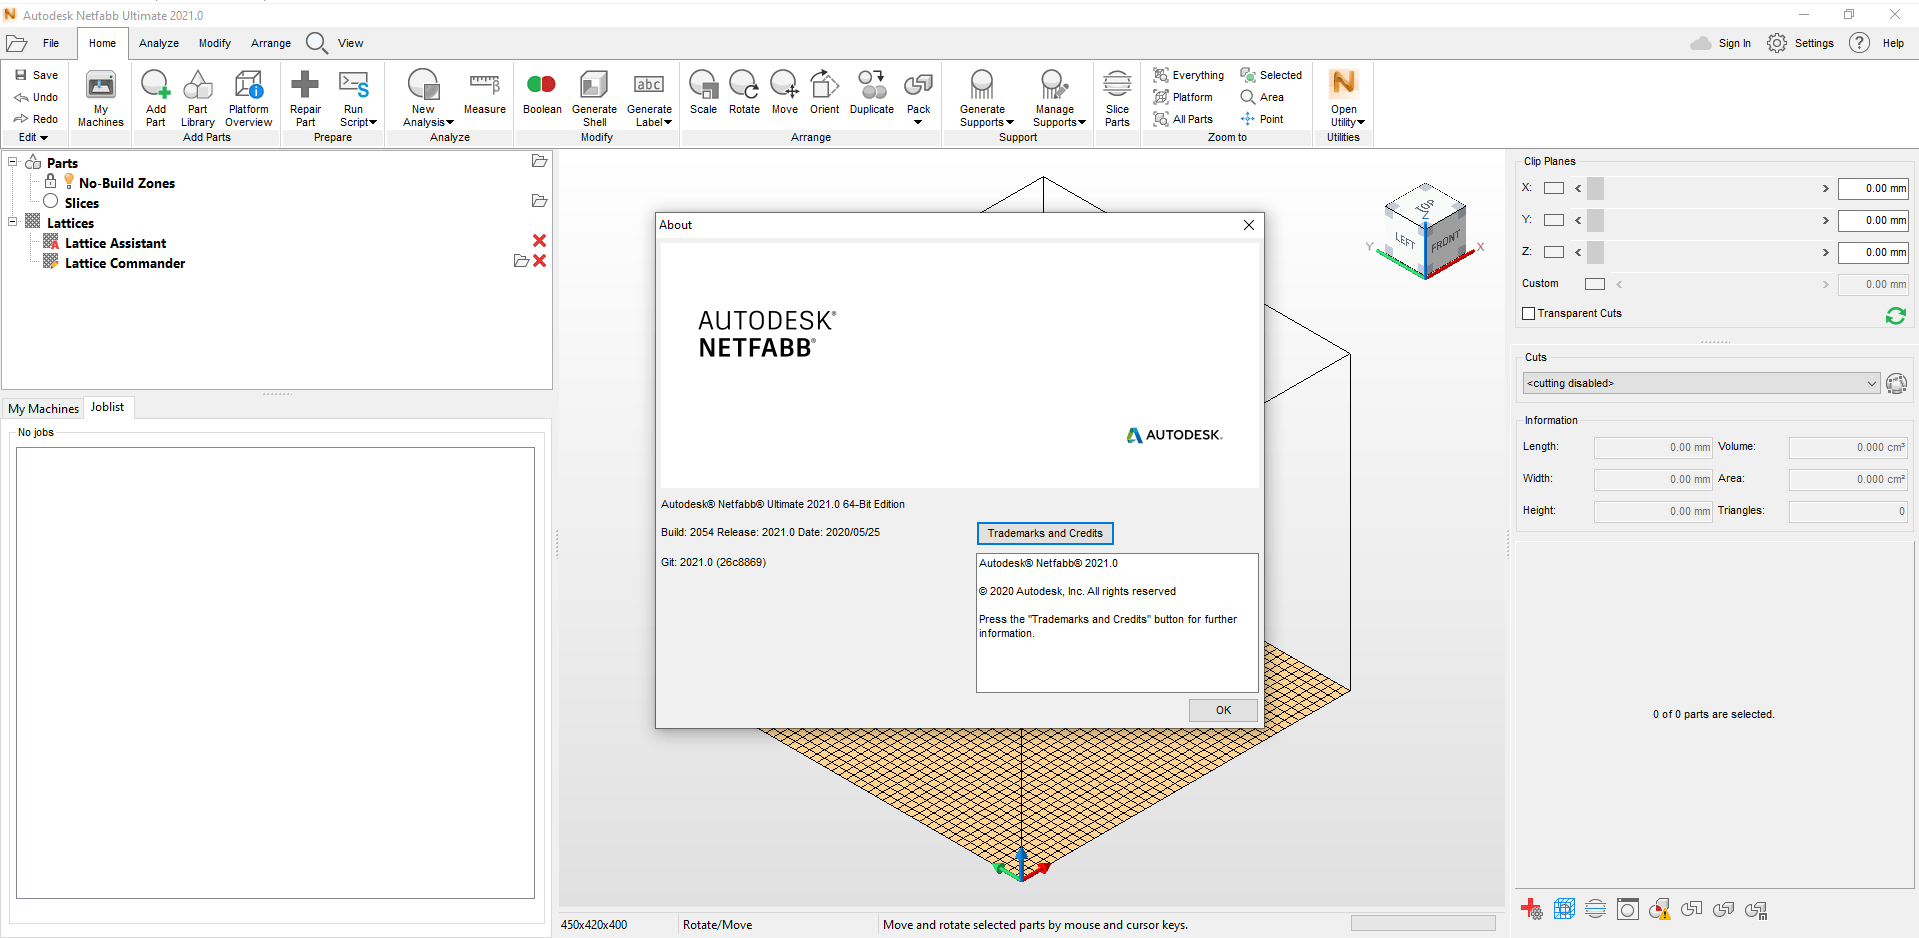 Download Autodesk Netfabb Ultimate 2021 R0 x64 full license